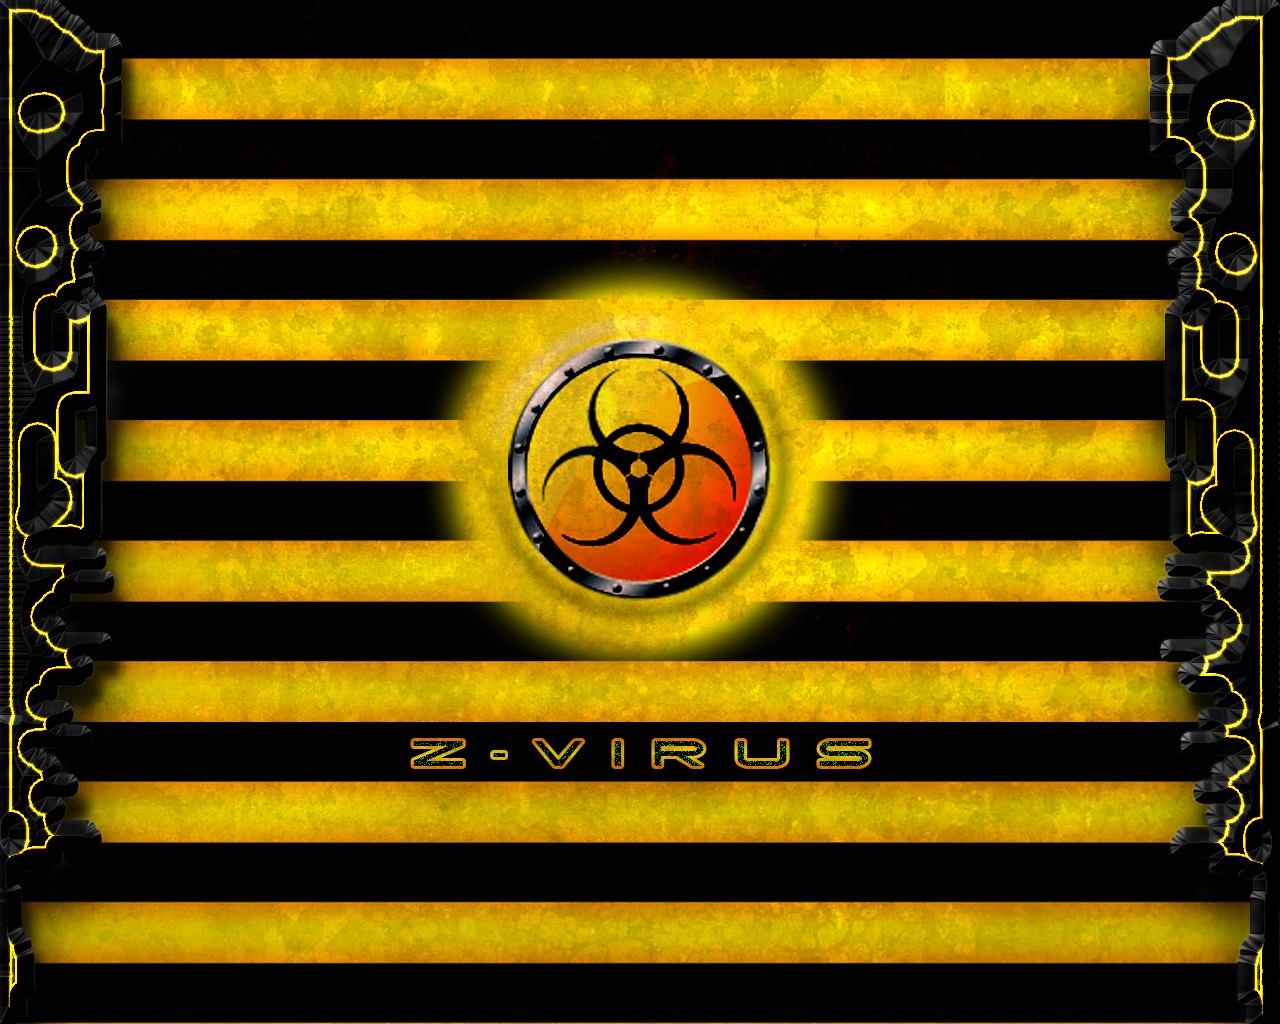 General 1280x1024 logo yellow